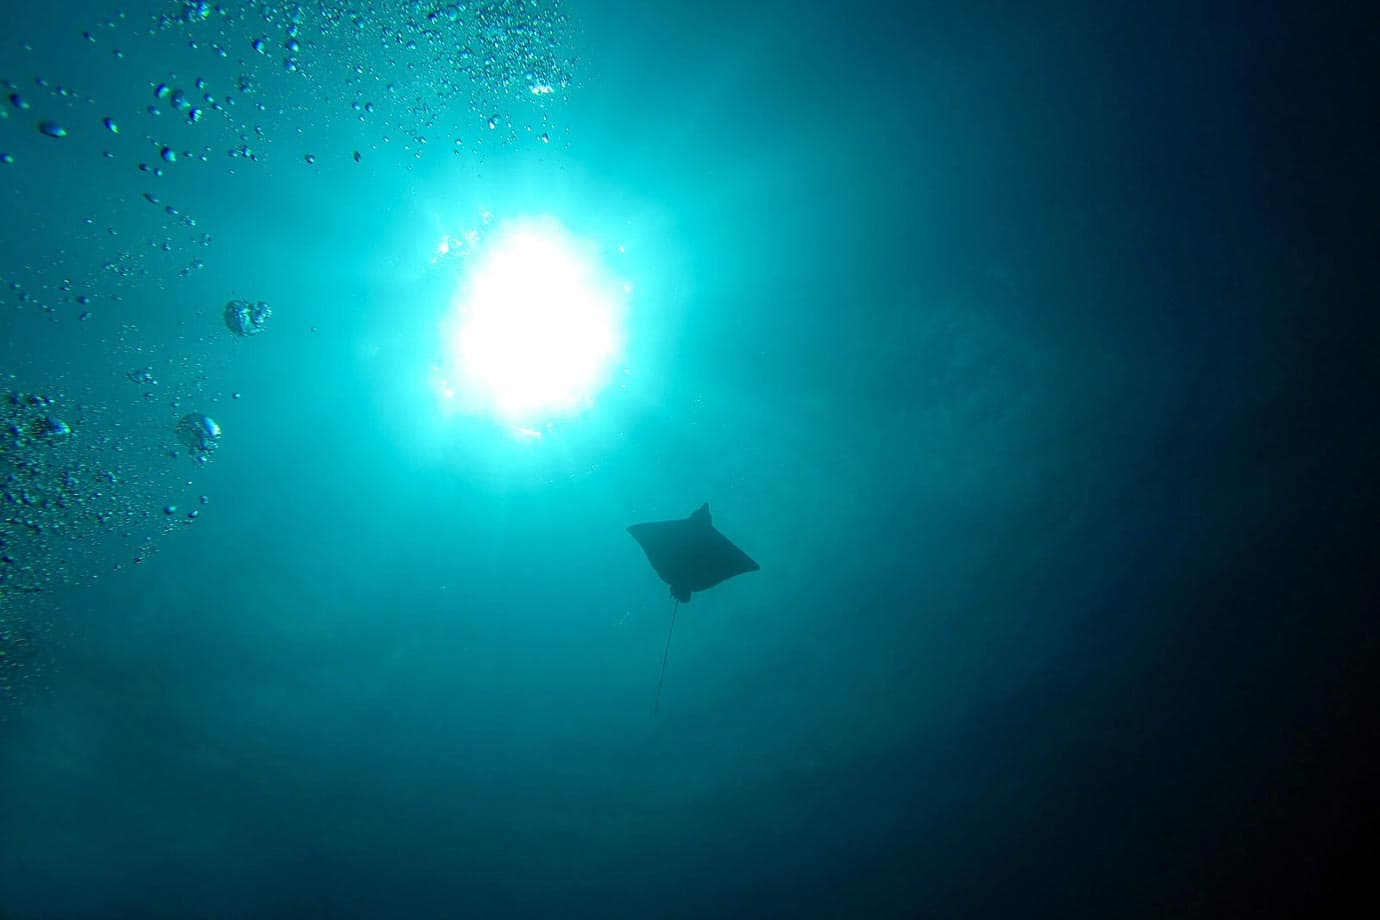 A spotted eagle ray silhouetted by the sun overhead